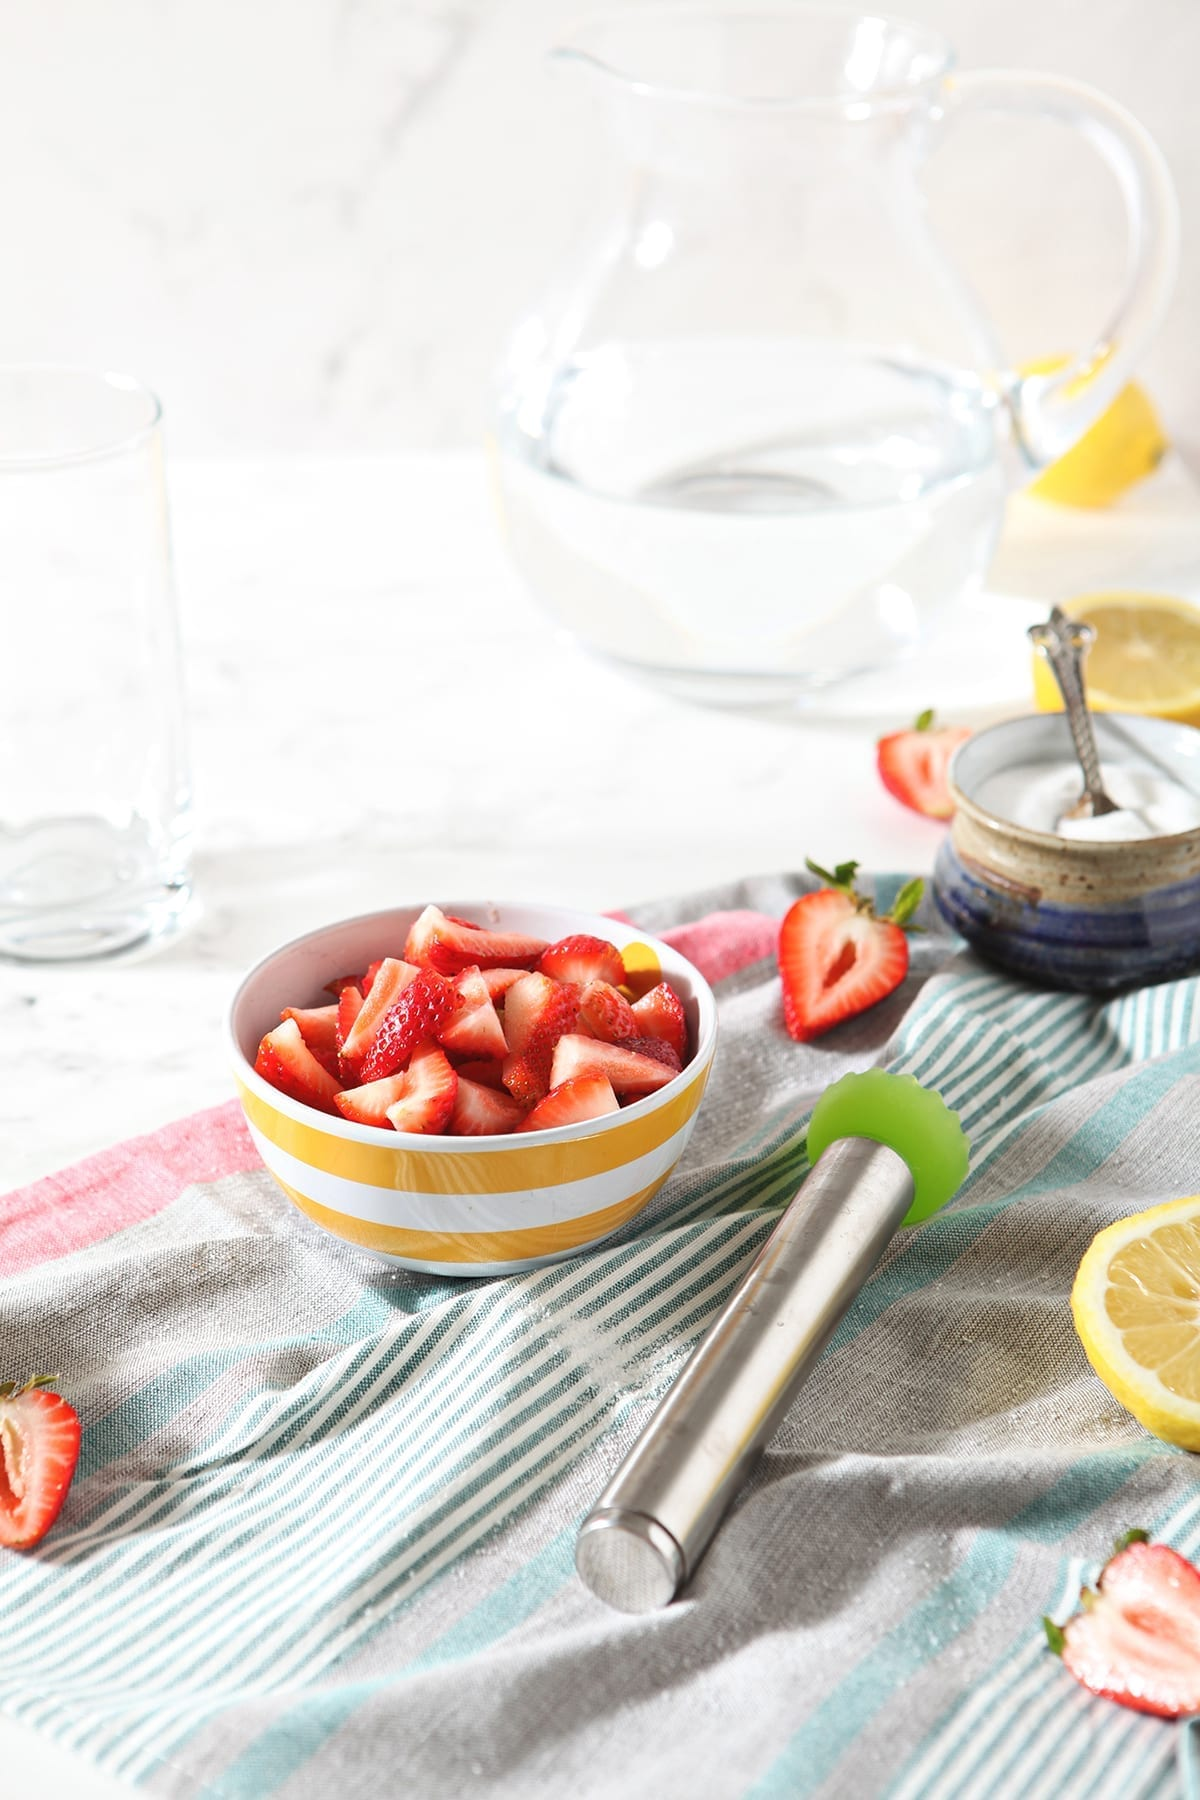 A bowl of strawberries, a pitcher of water and lemons are shown on marble